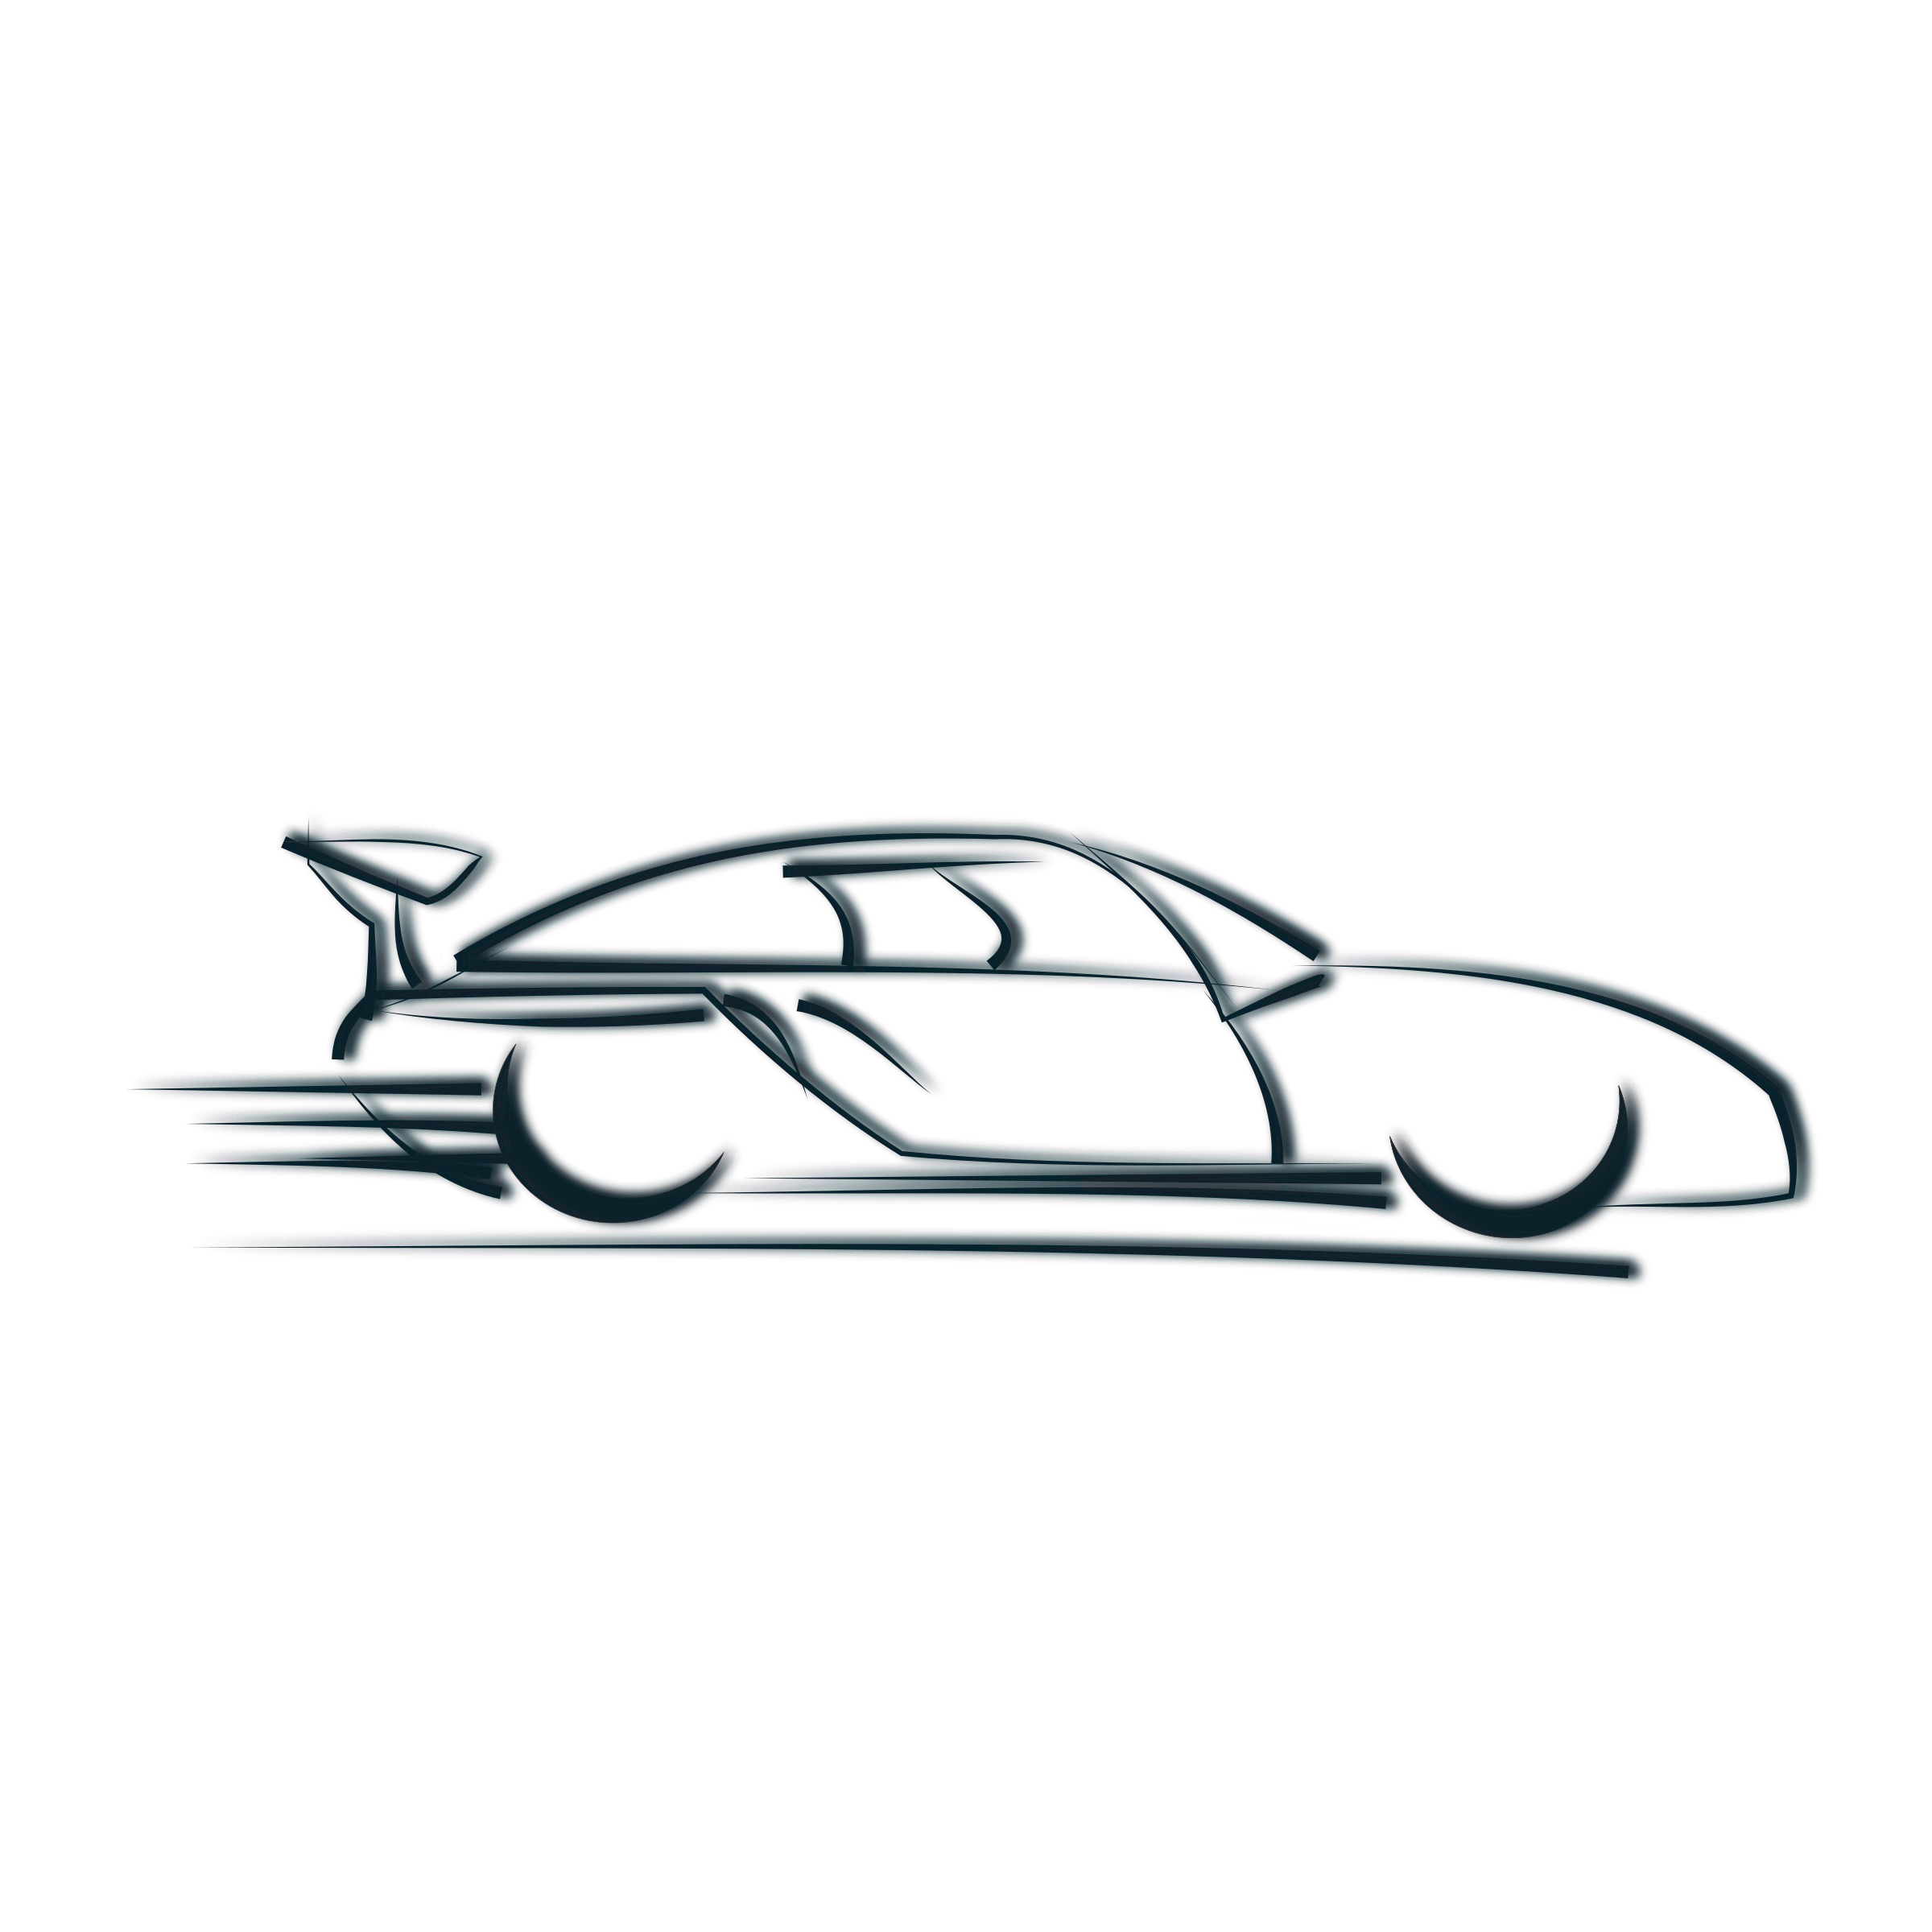 Car in motion clipart clip art free stock Free Moving Car Cliparts, Download Free Clip Art, Free Clip Art on ... clip art free stock